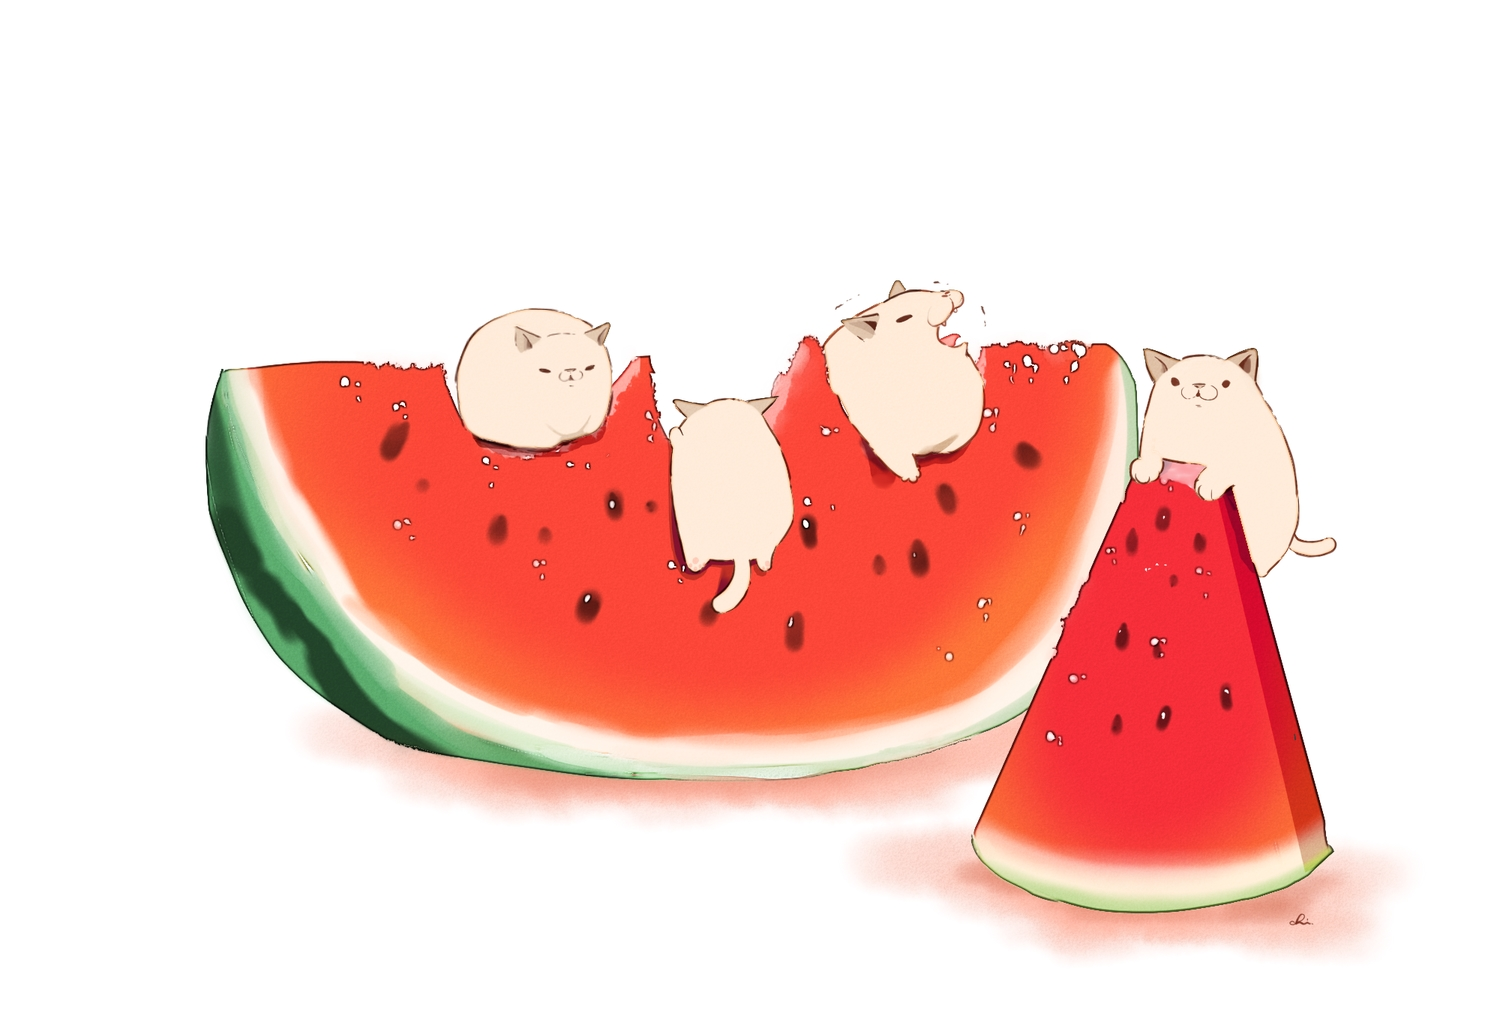 animal cat chai_(artist) food fruit original signed watermelon white